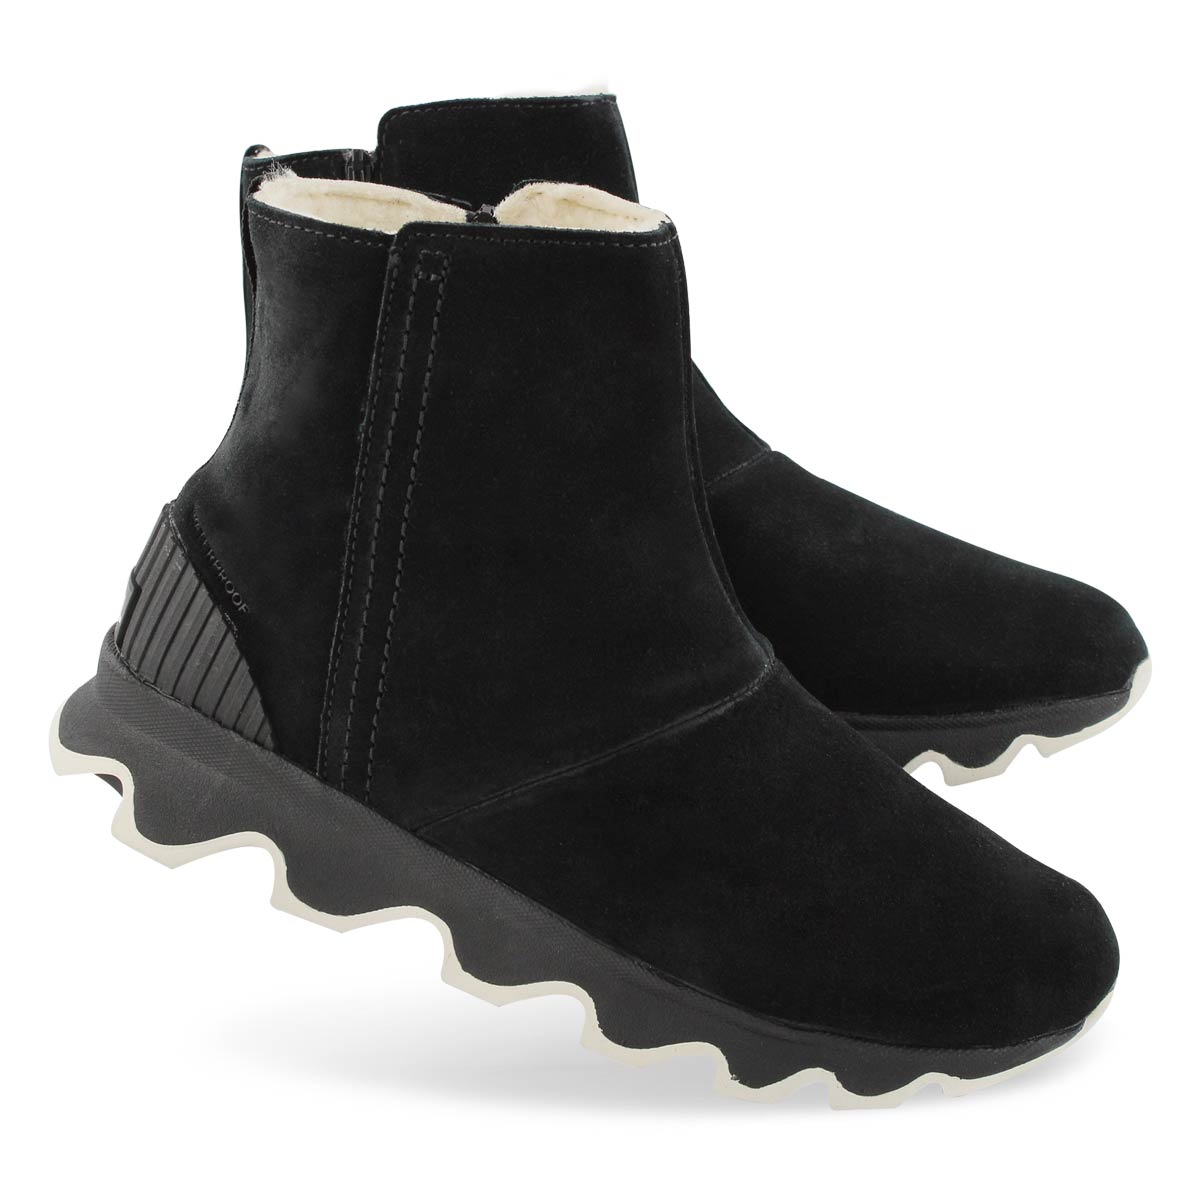 Lds Kinetic Short black wtpf ankle boot